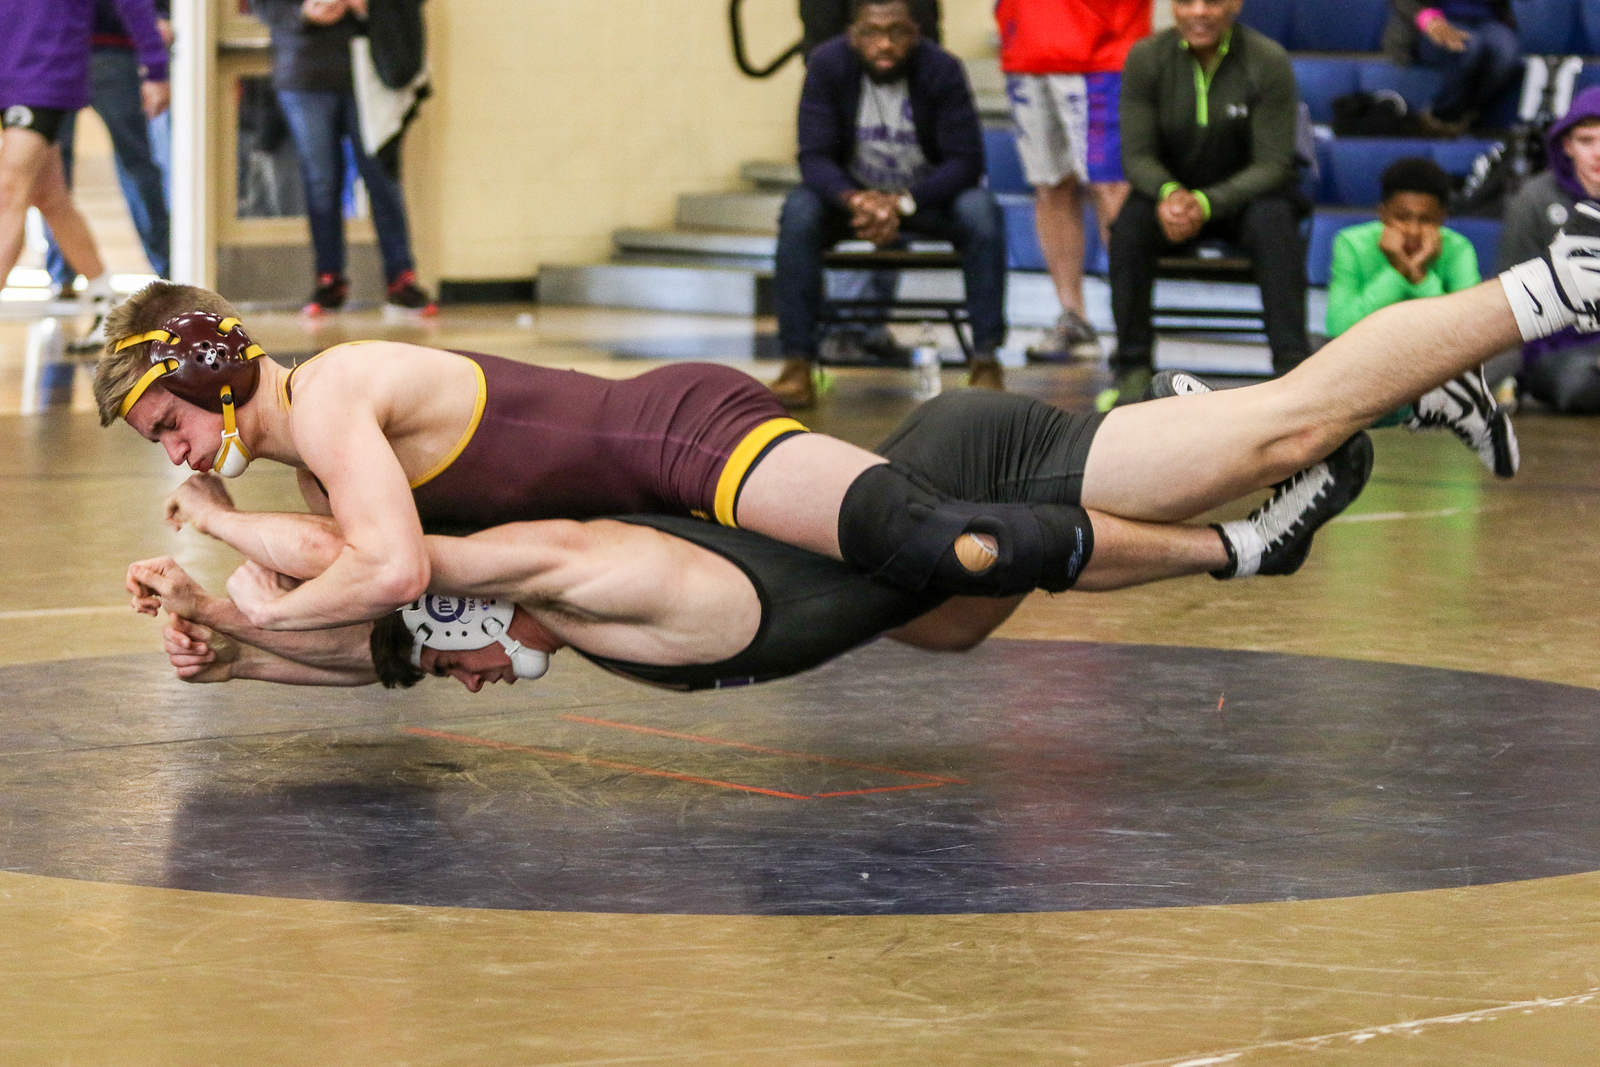 Jack Brown of Gonzaga College High School in Washington and Charlie Brenner of Bishop McNamara High School in Forestville go airborne and horizontal as Brown attempts to break Brenner's hold. Brenner won third place by a score of 7-0.